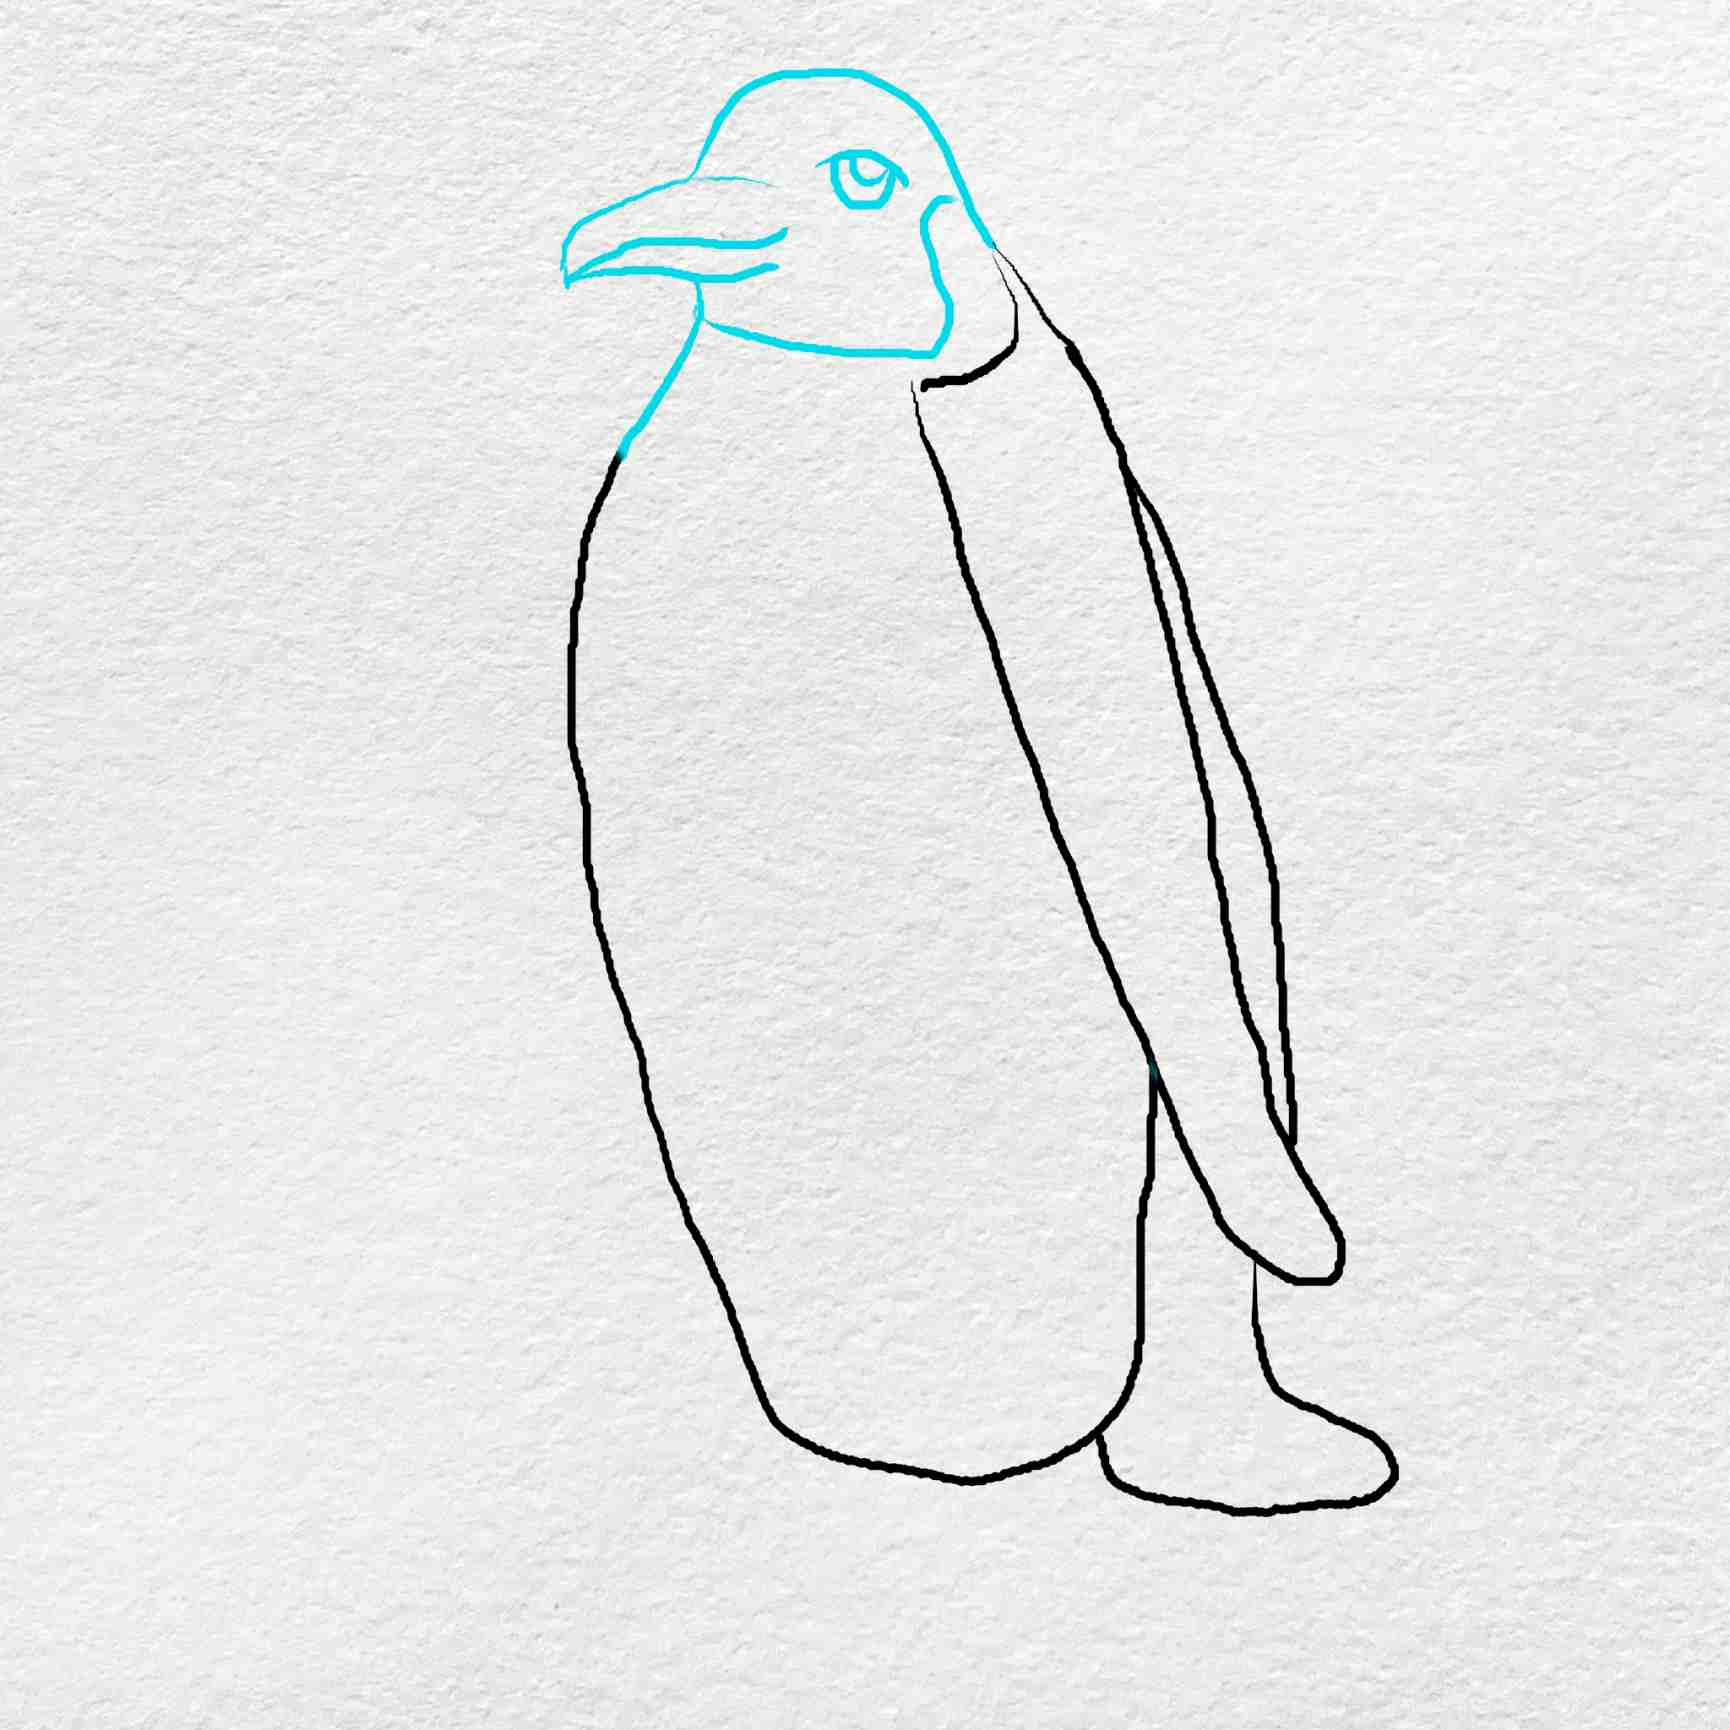 Emperor Penguin Drawing: Step 4